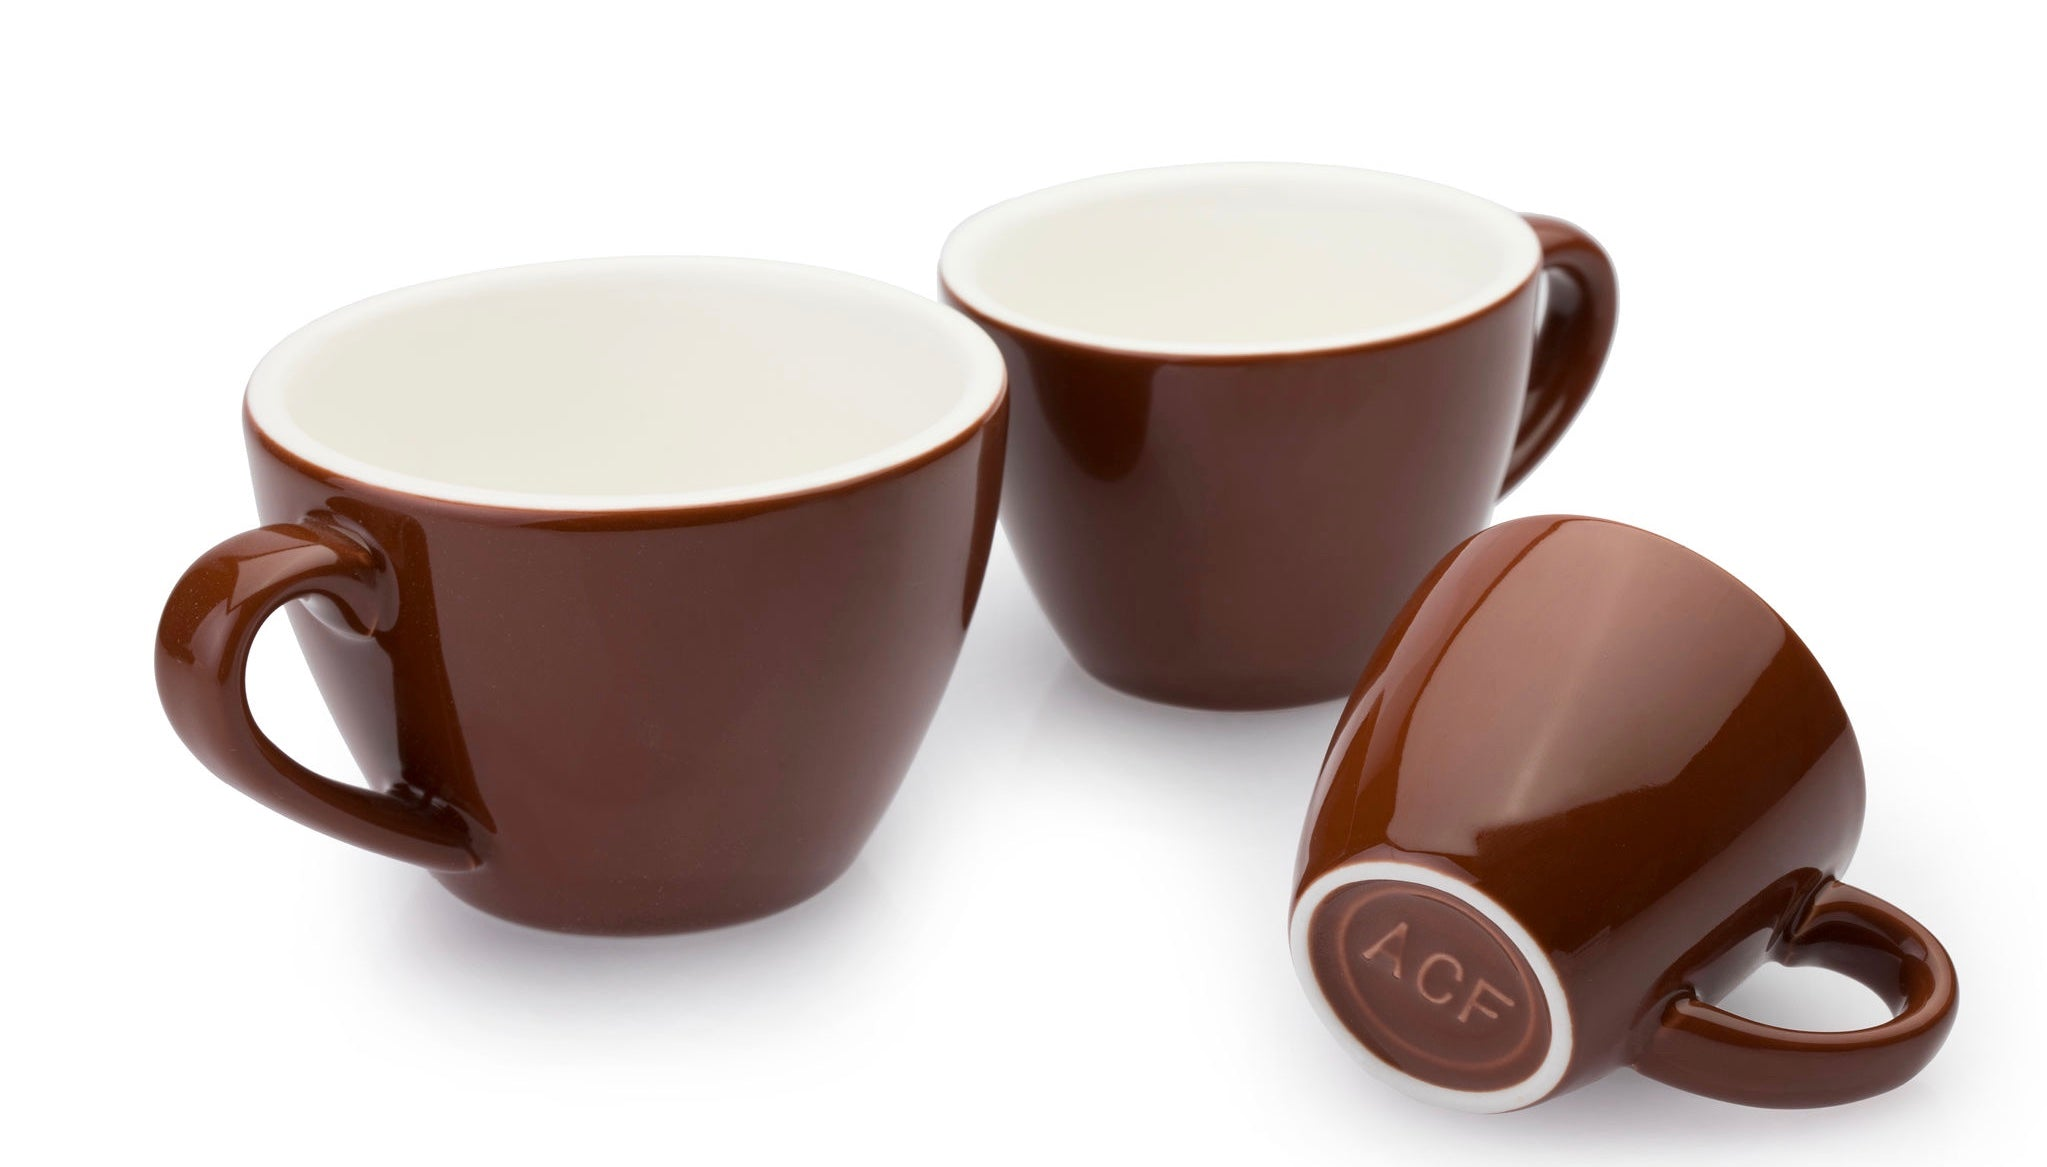 ACF Coffee Cups - The Baristas Cup, Worlds Best Coffee Cups